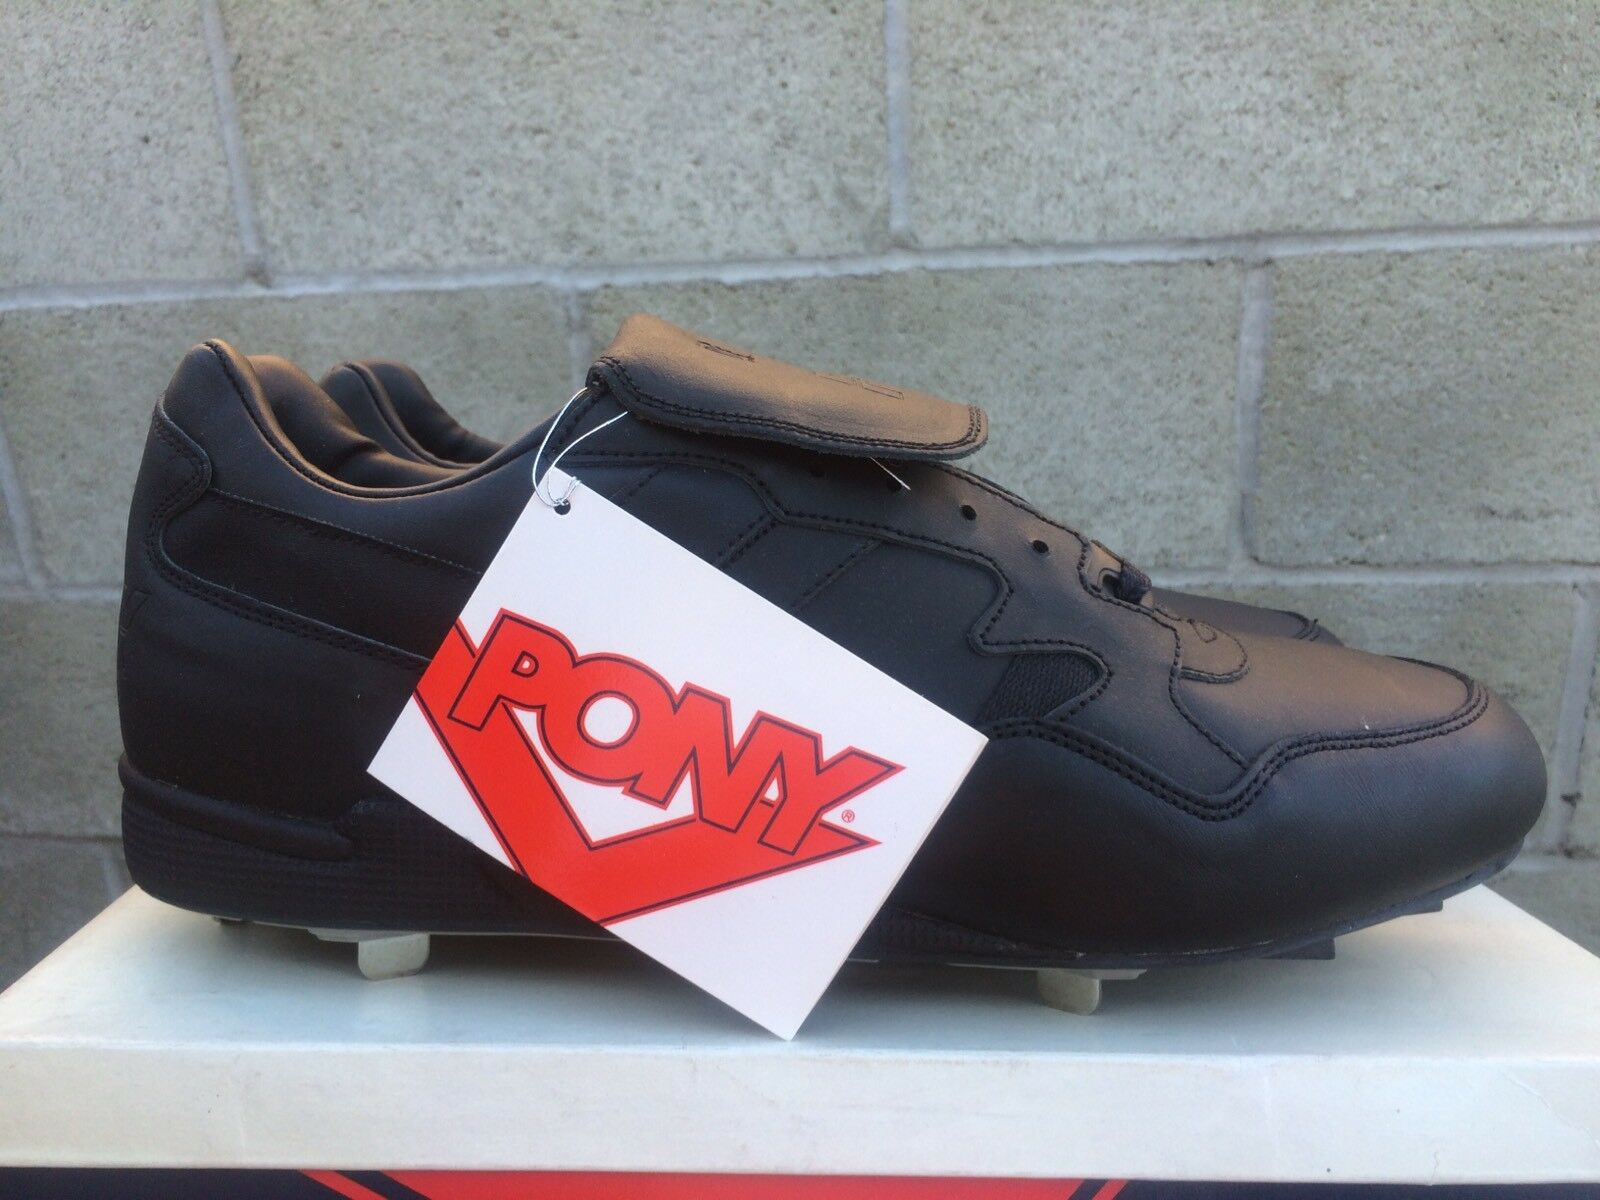 VINTAGE PONY PRO SPIKE LO CLEATS Sz. 14 DEADSTOCK COLLECTIBLE RARE